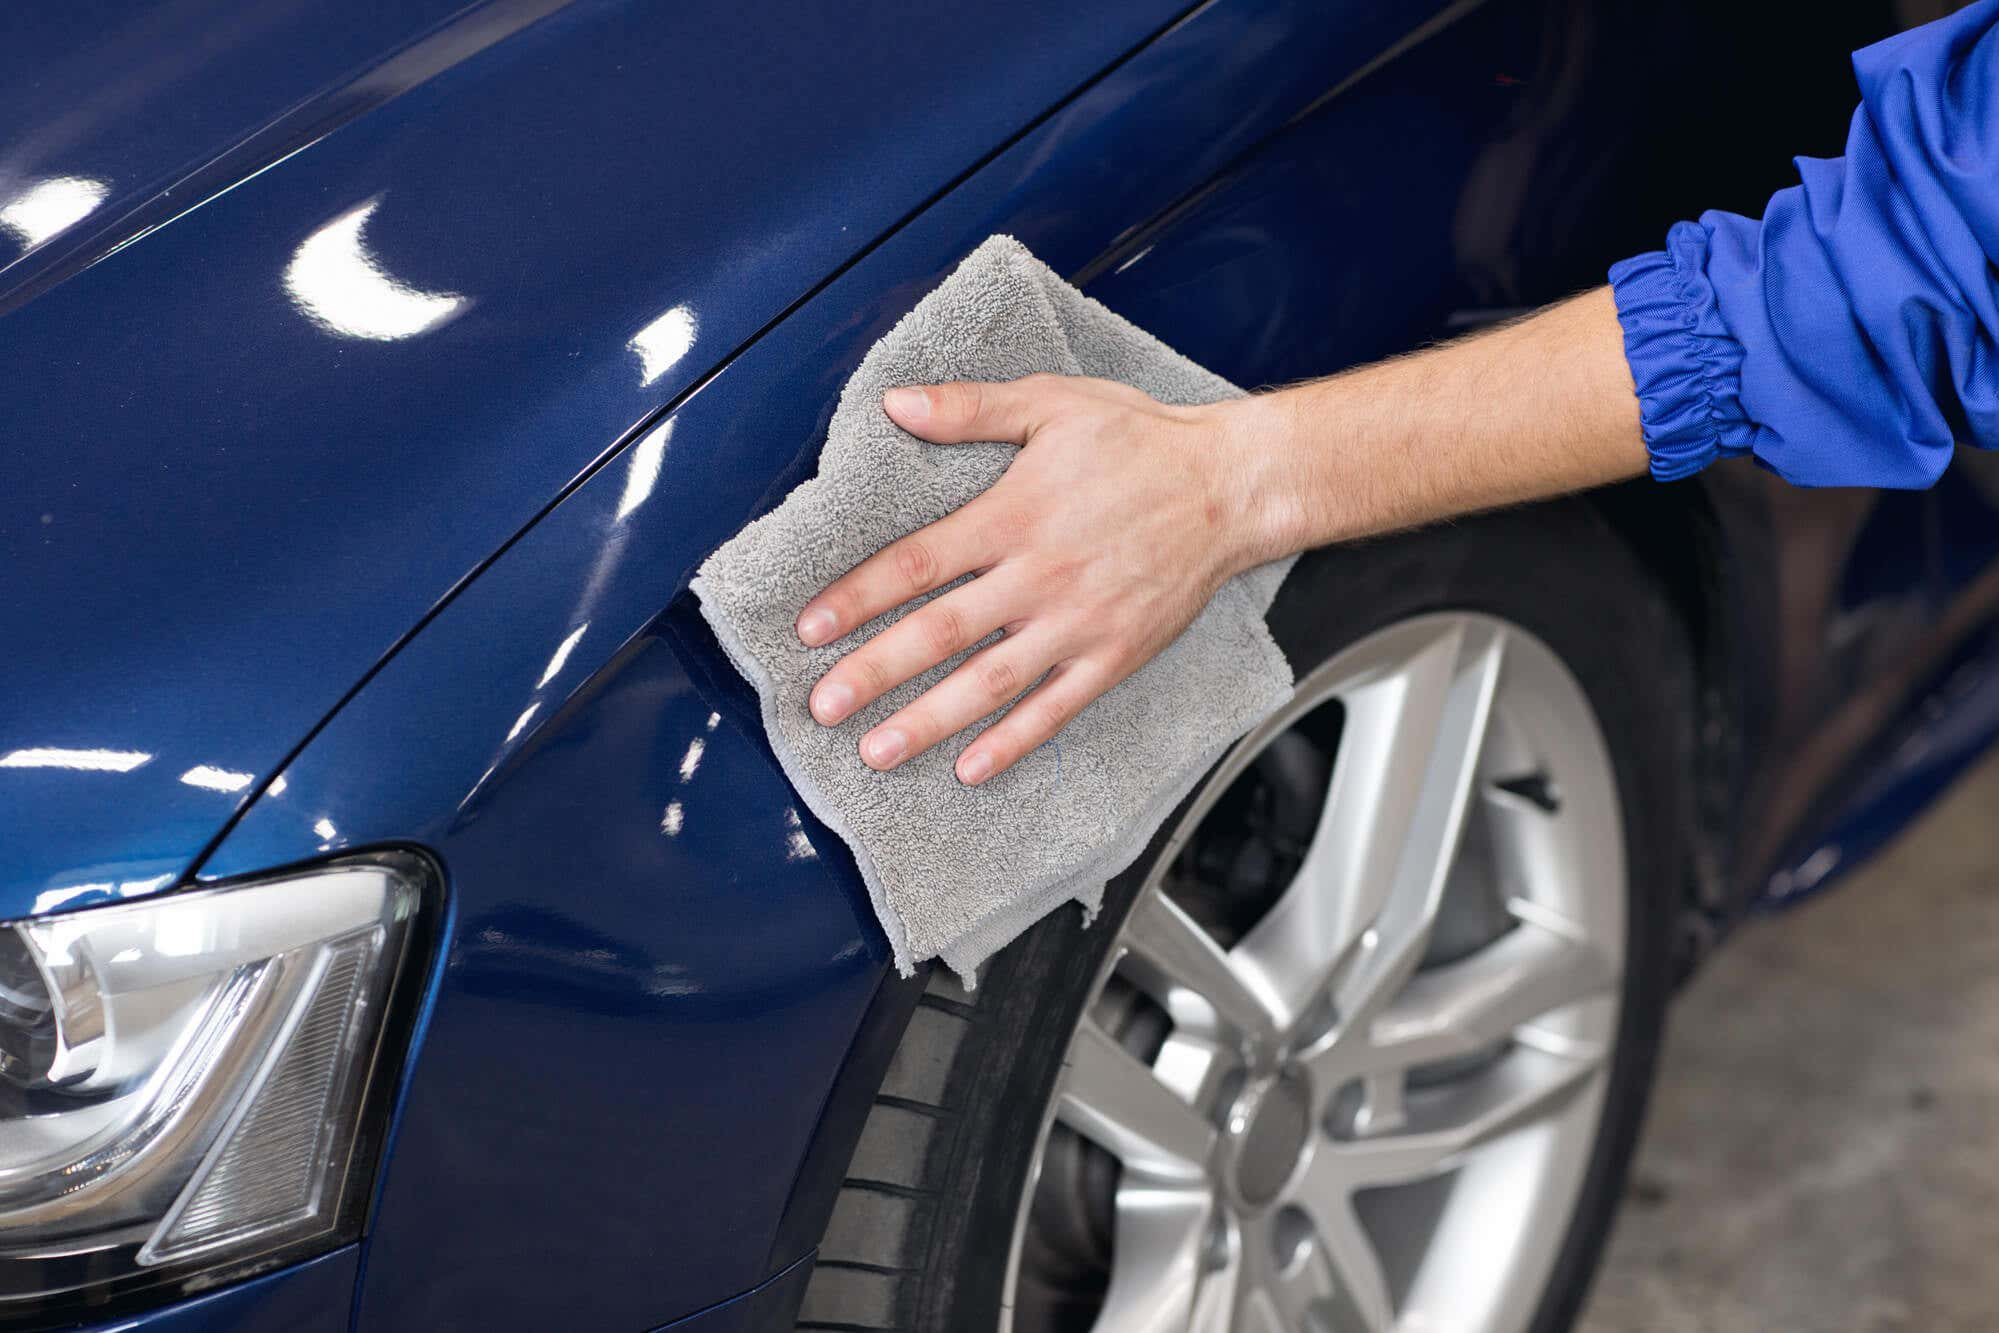 Man polishing cleaning car with microfiber cloth